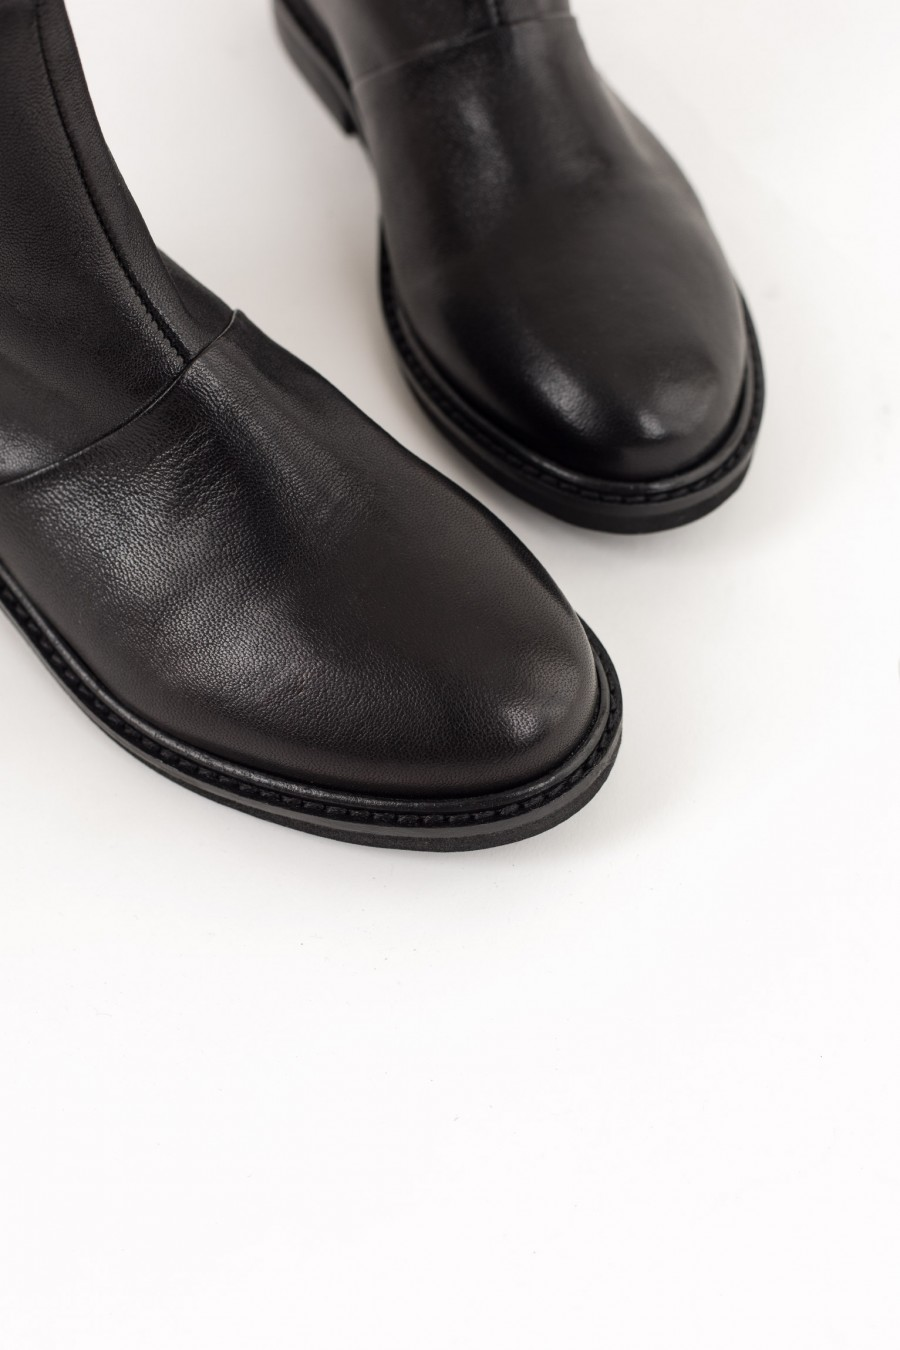 Rounded toe black boots